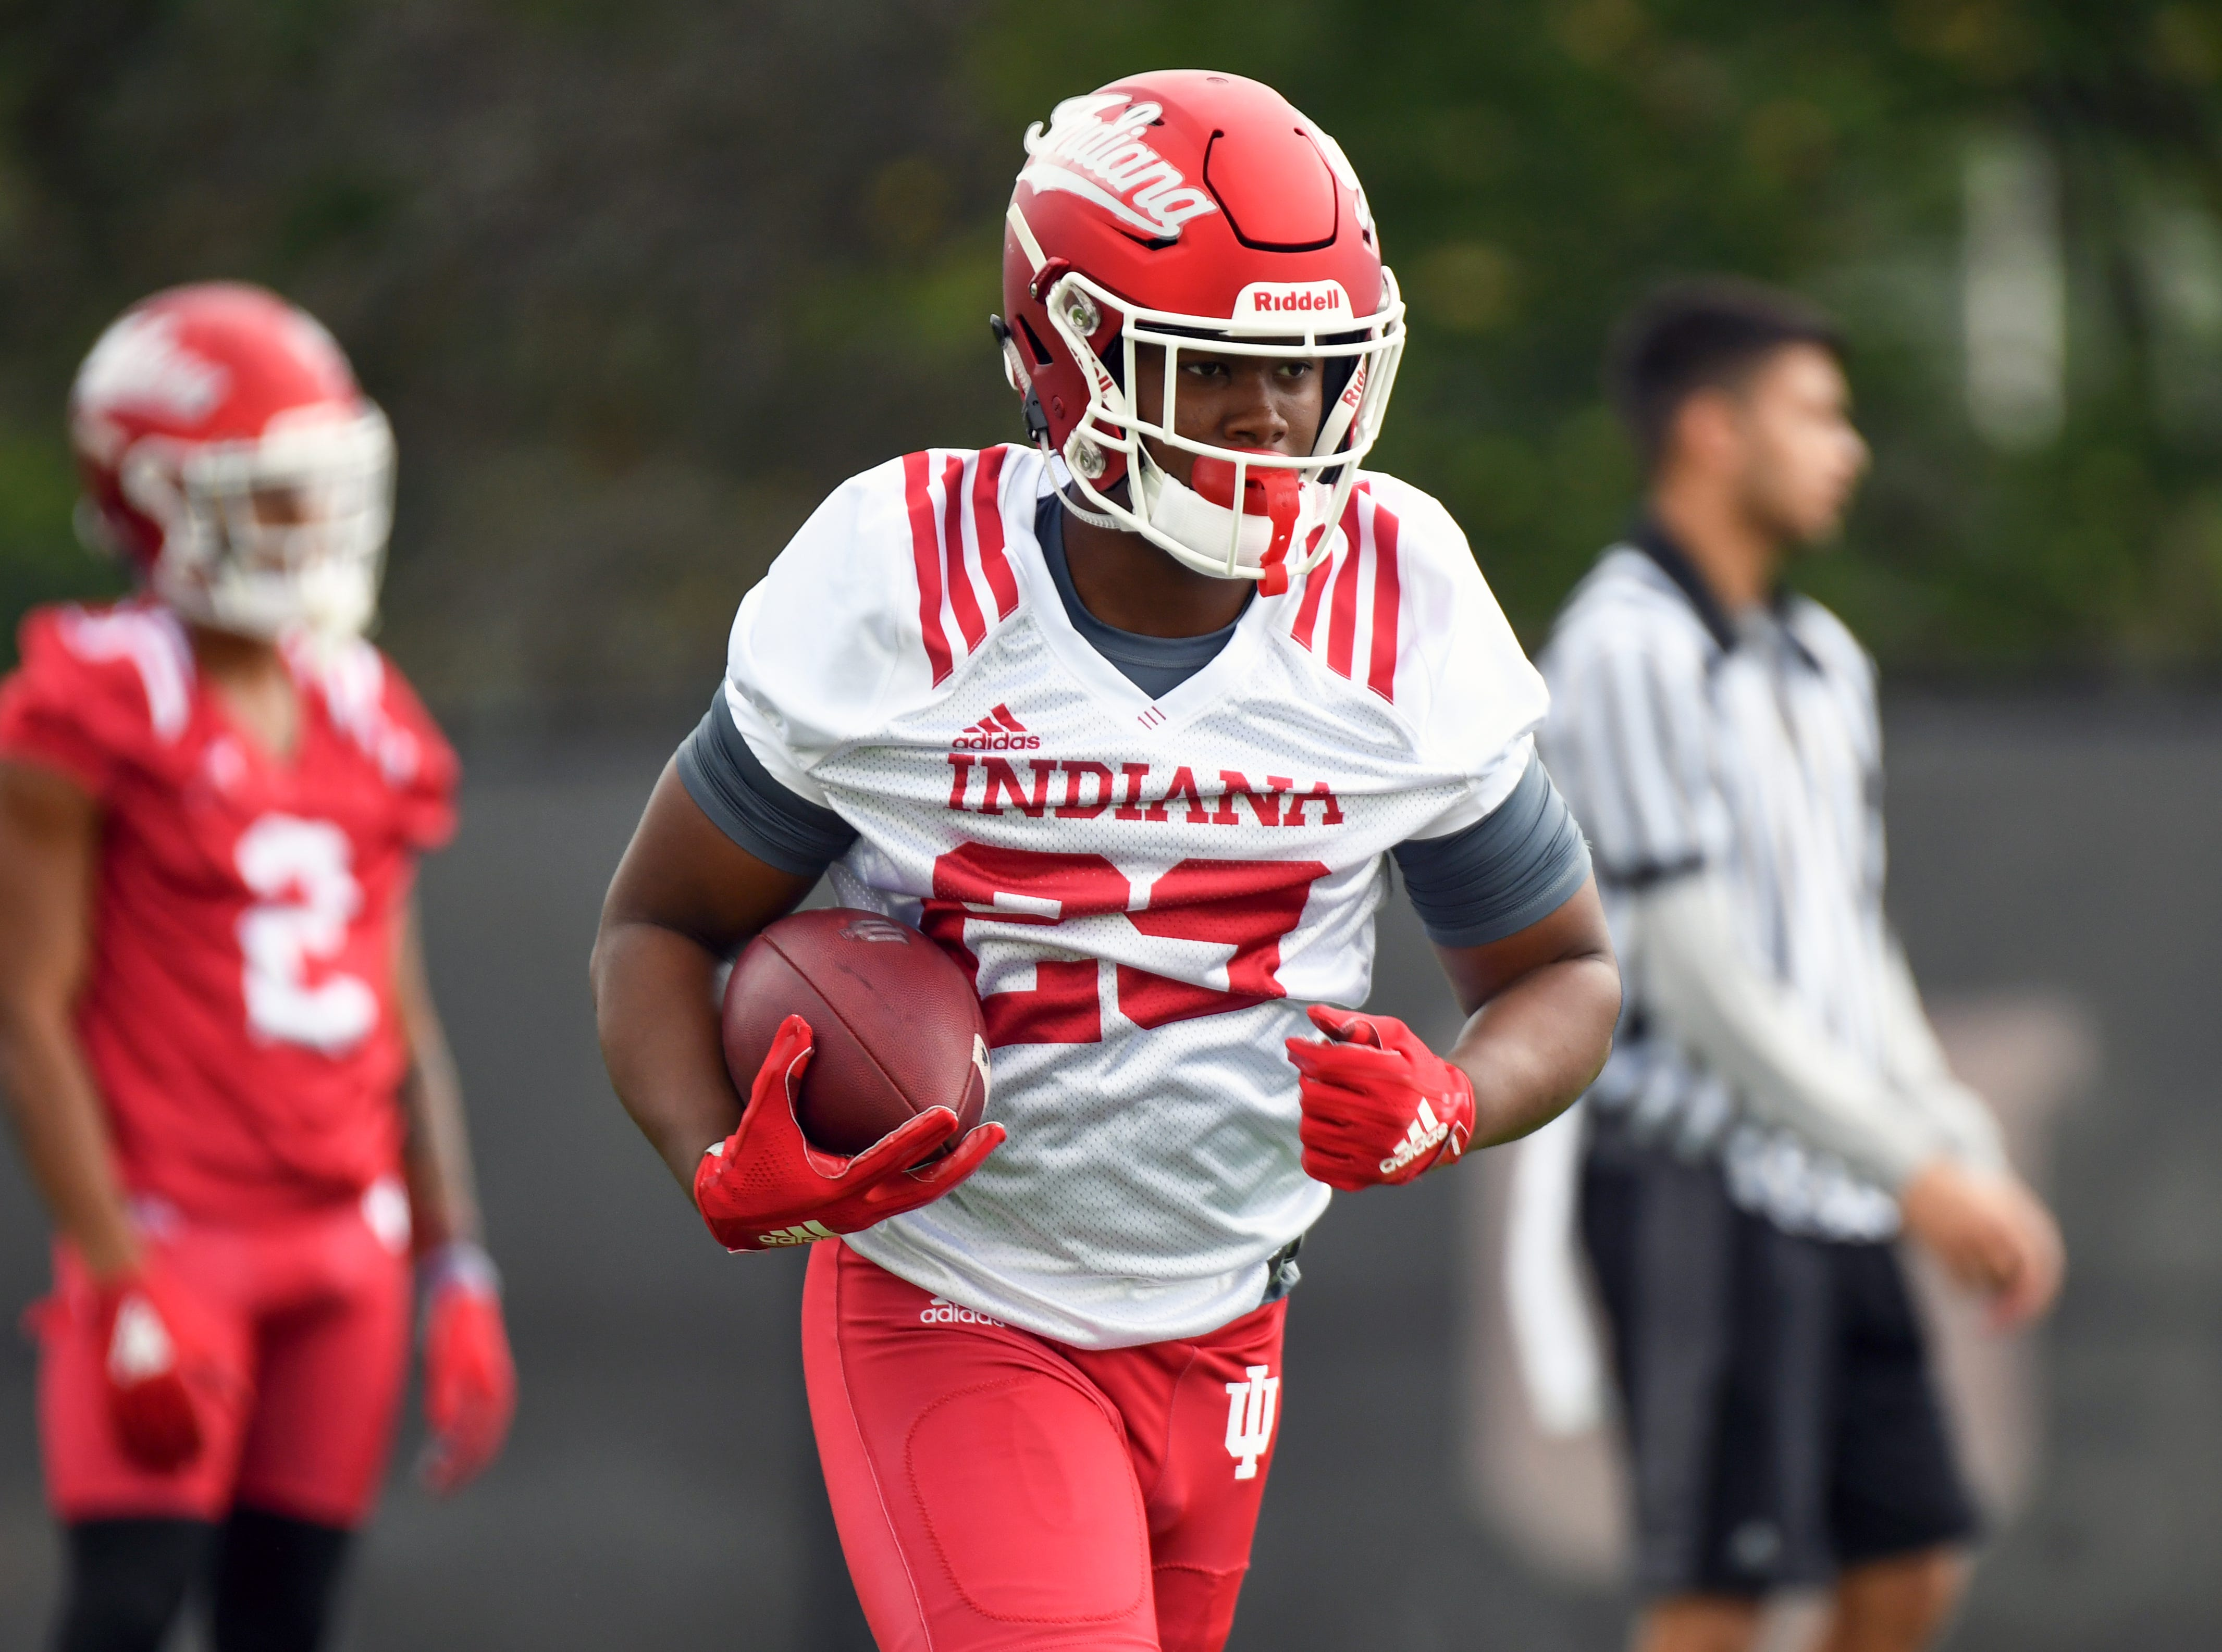 Indiana Hoosiers running back Ronnie Walker Jr. (23) participates in drills during IU's practice at Mellencamp Pavilion in Bloomington, Ind., on Friday, August 3, 2018.